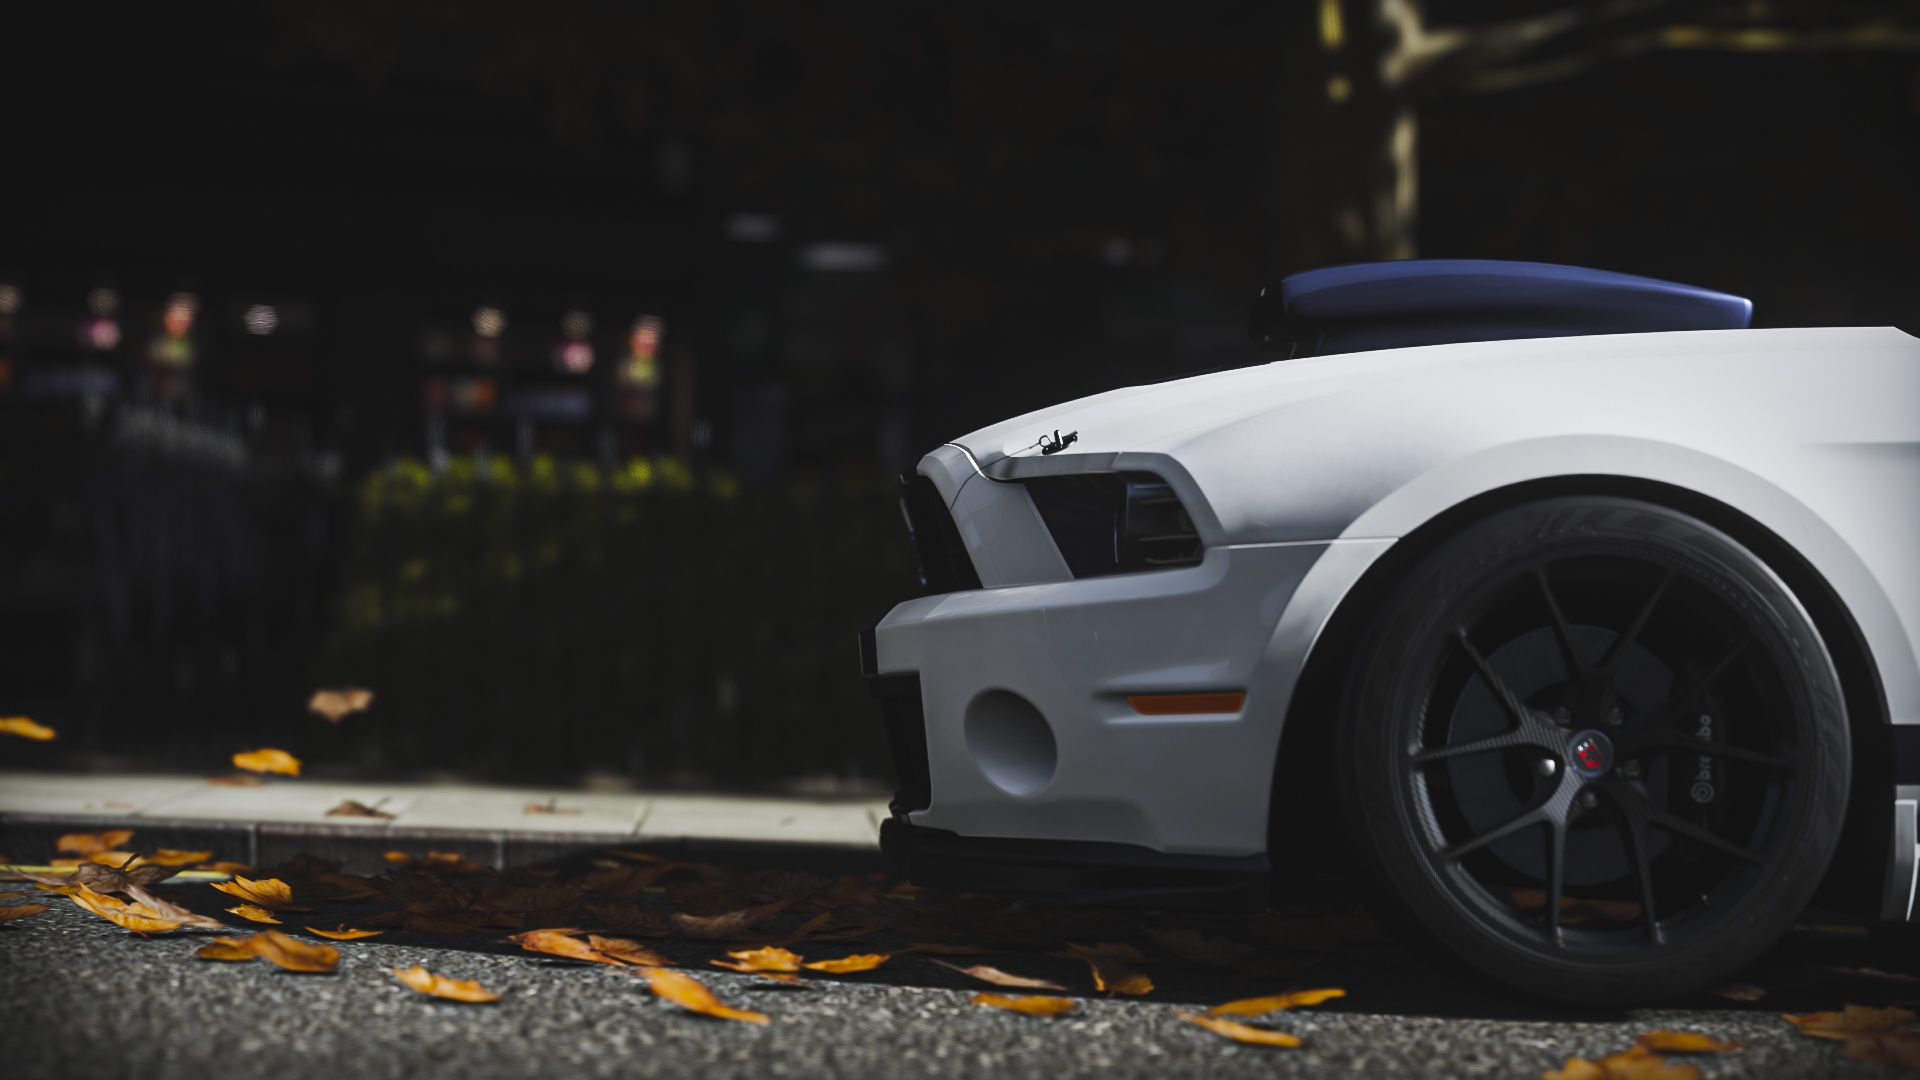 You gaze upon your cute little creation and wish you could hoon its little wheels off. Download 1920x1080 Ford Mustang Shelby Gt500 Forza Horizon 4 Racing Games White Muscle Cars Wallpapers For Widescreen Wallpapermaiden